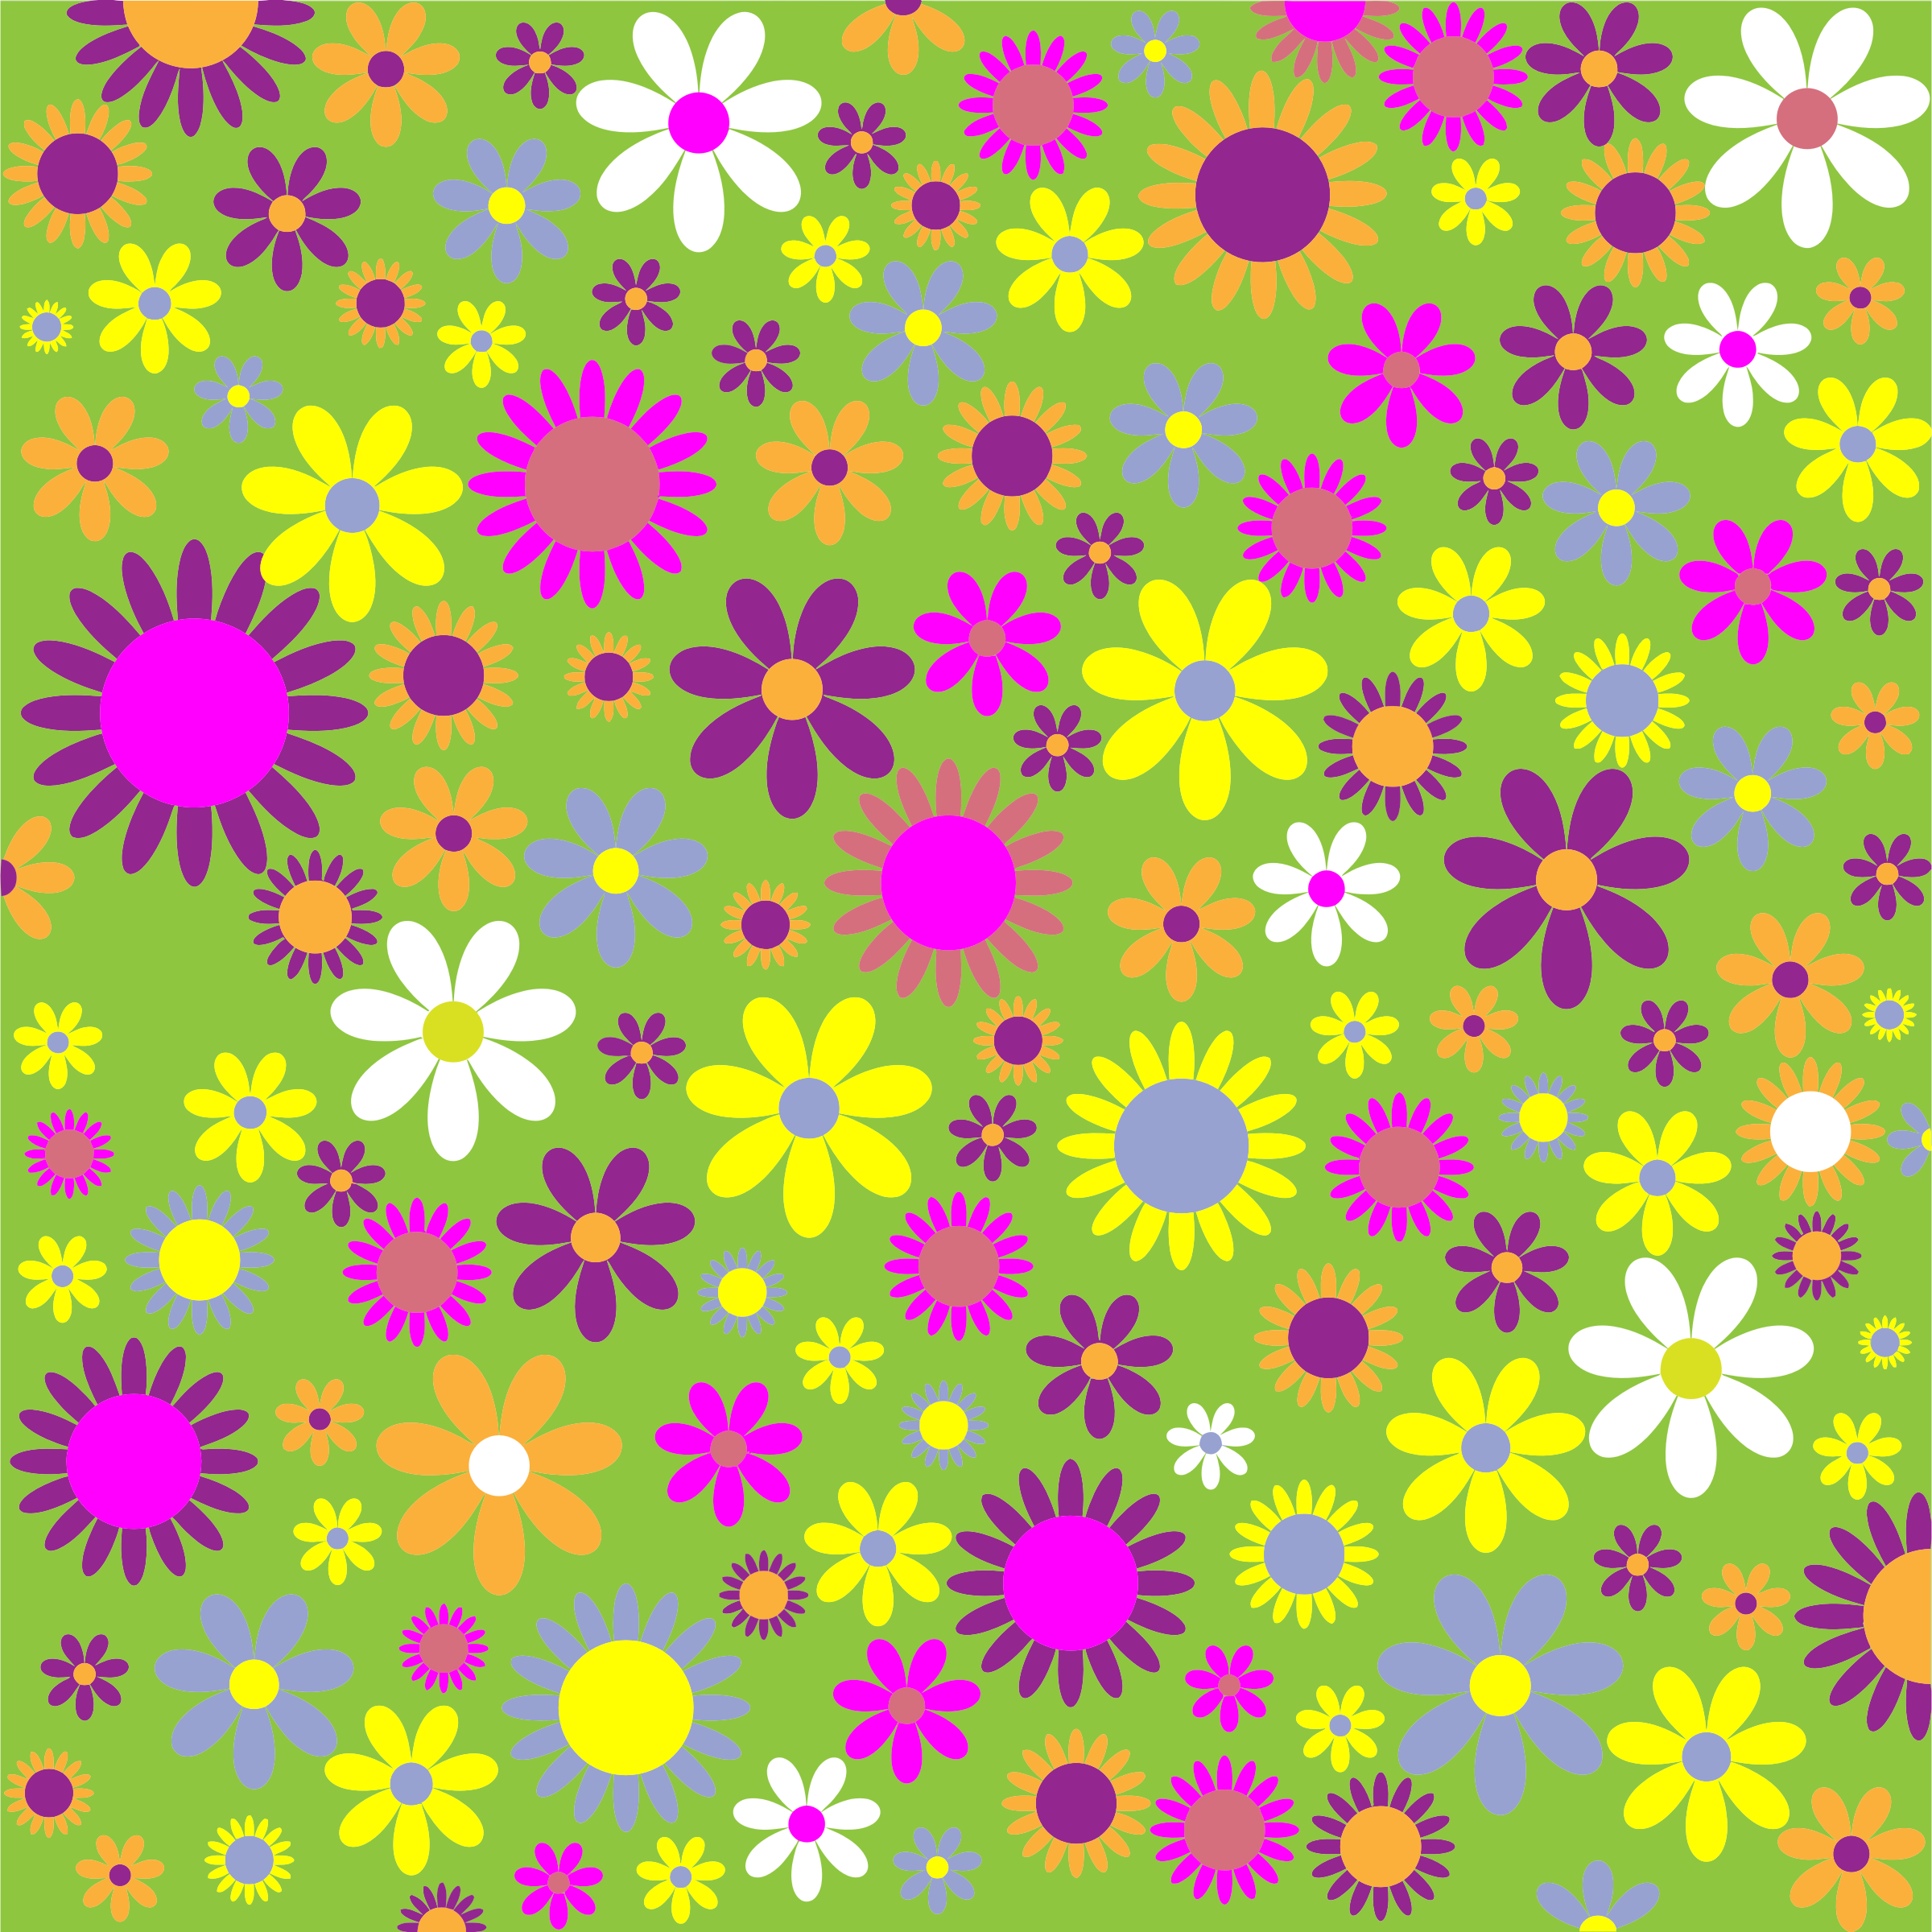 Flower patterns clipart black and white Clipart pattern flower - ClipartFox black and white